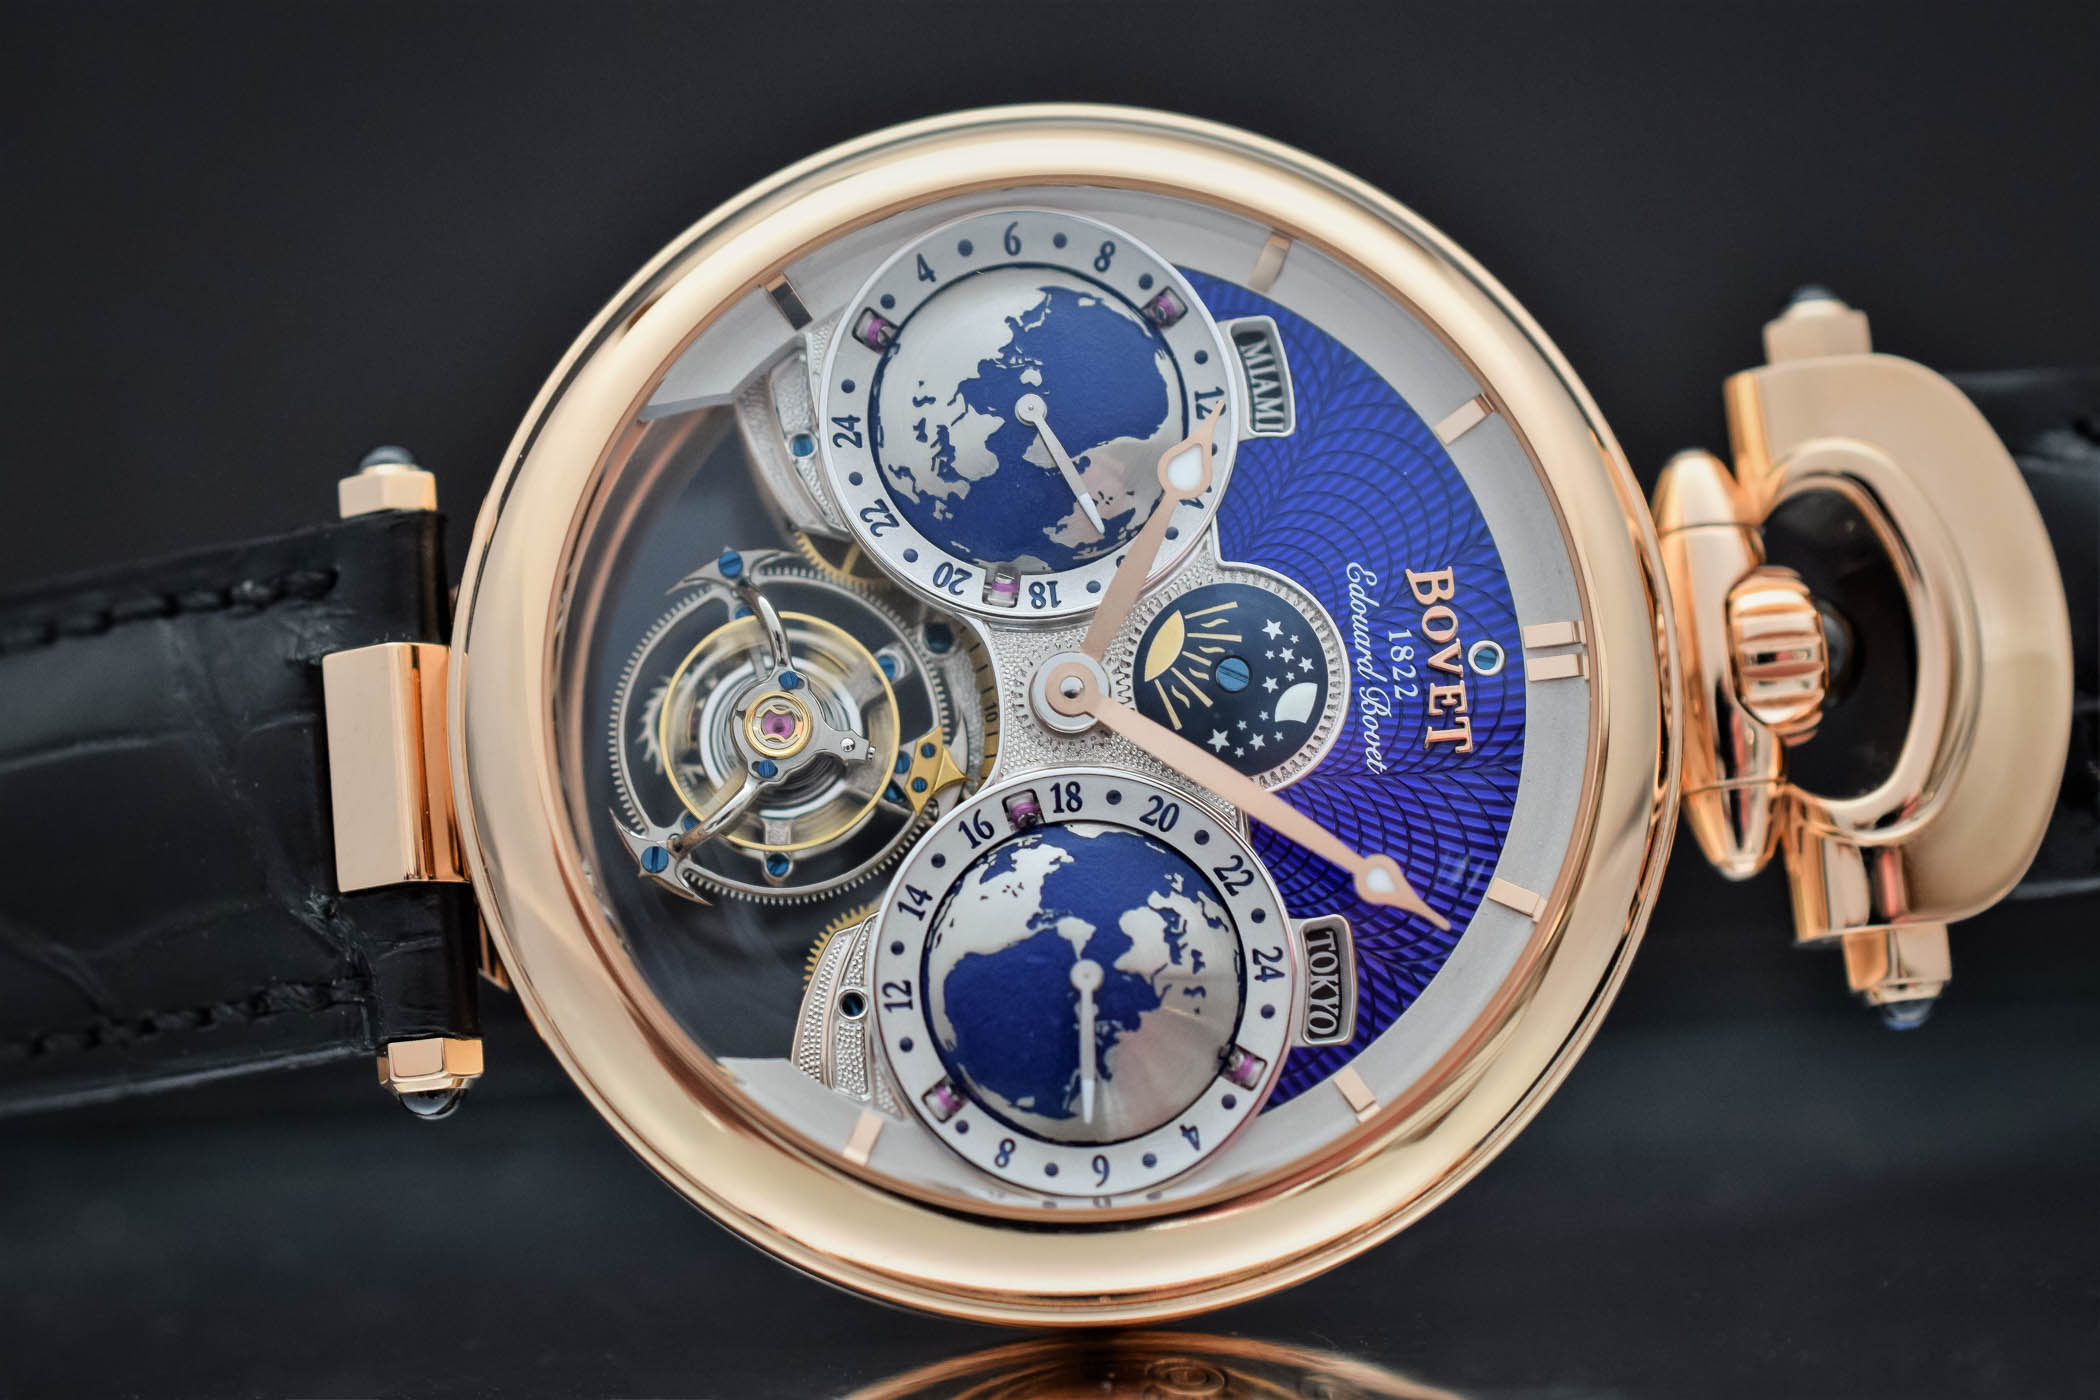 usa tag review watches hour no s front watch v watchtime virtuoso magazine square bovet jumping